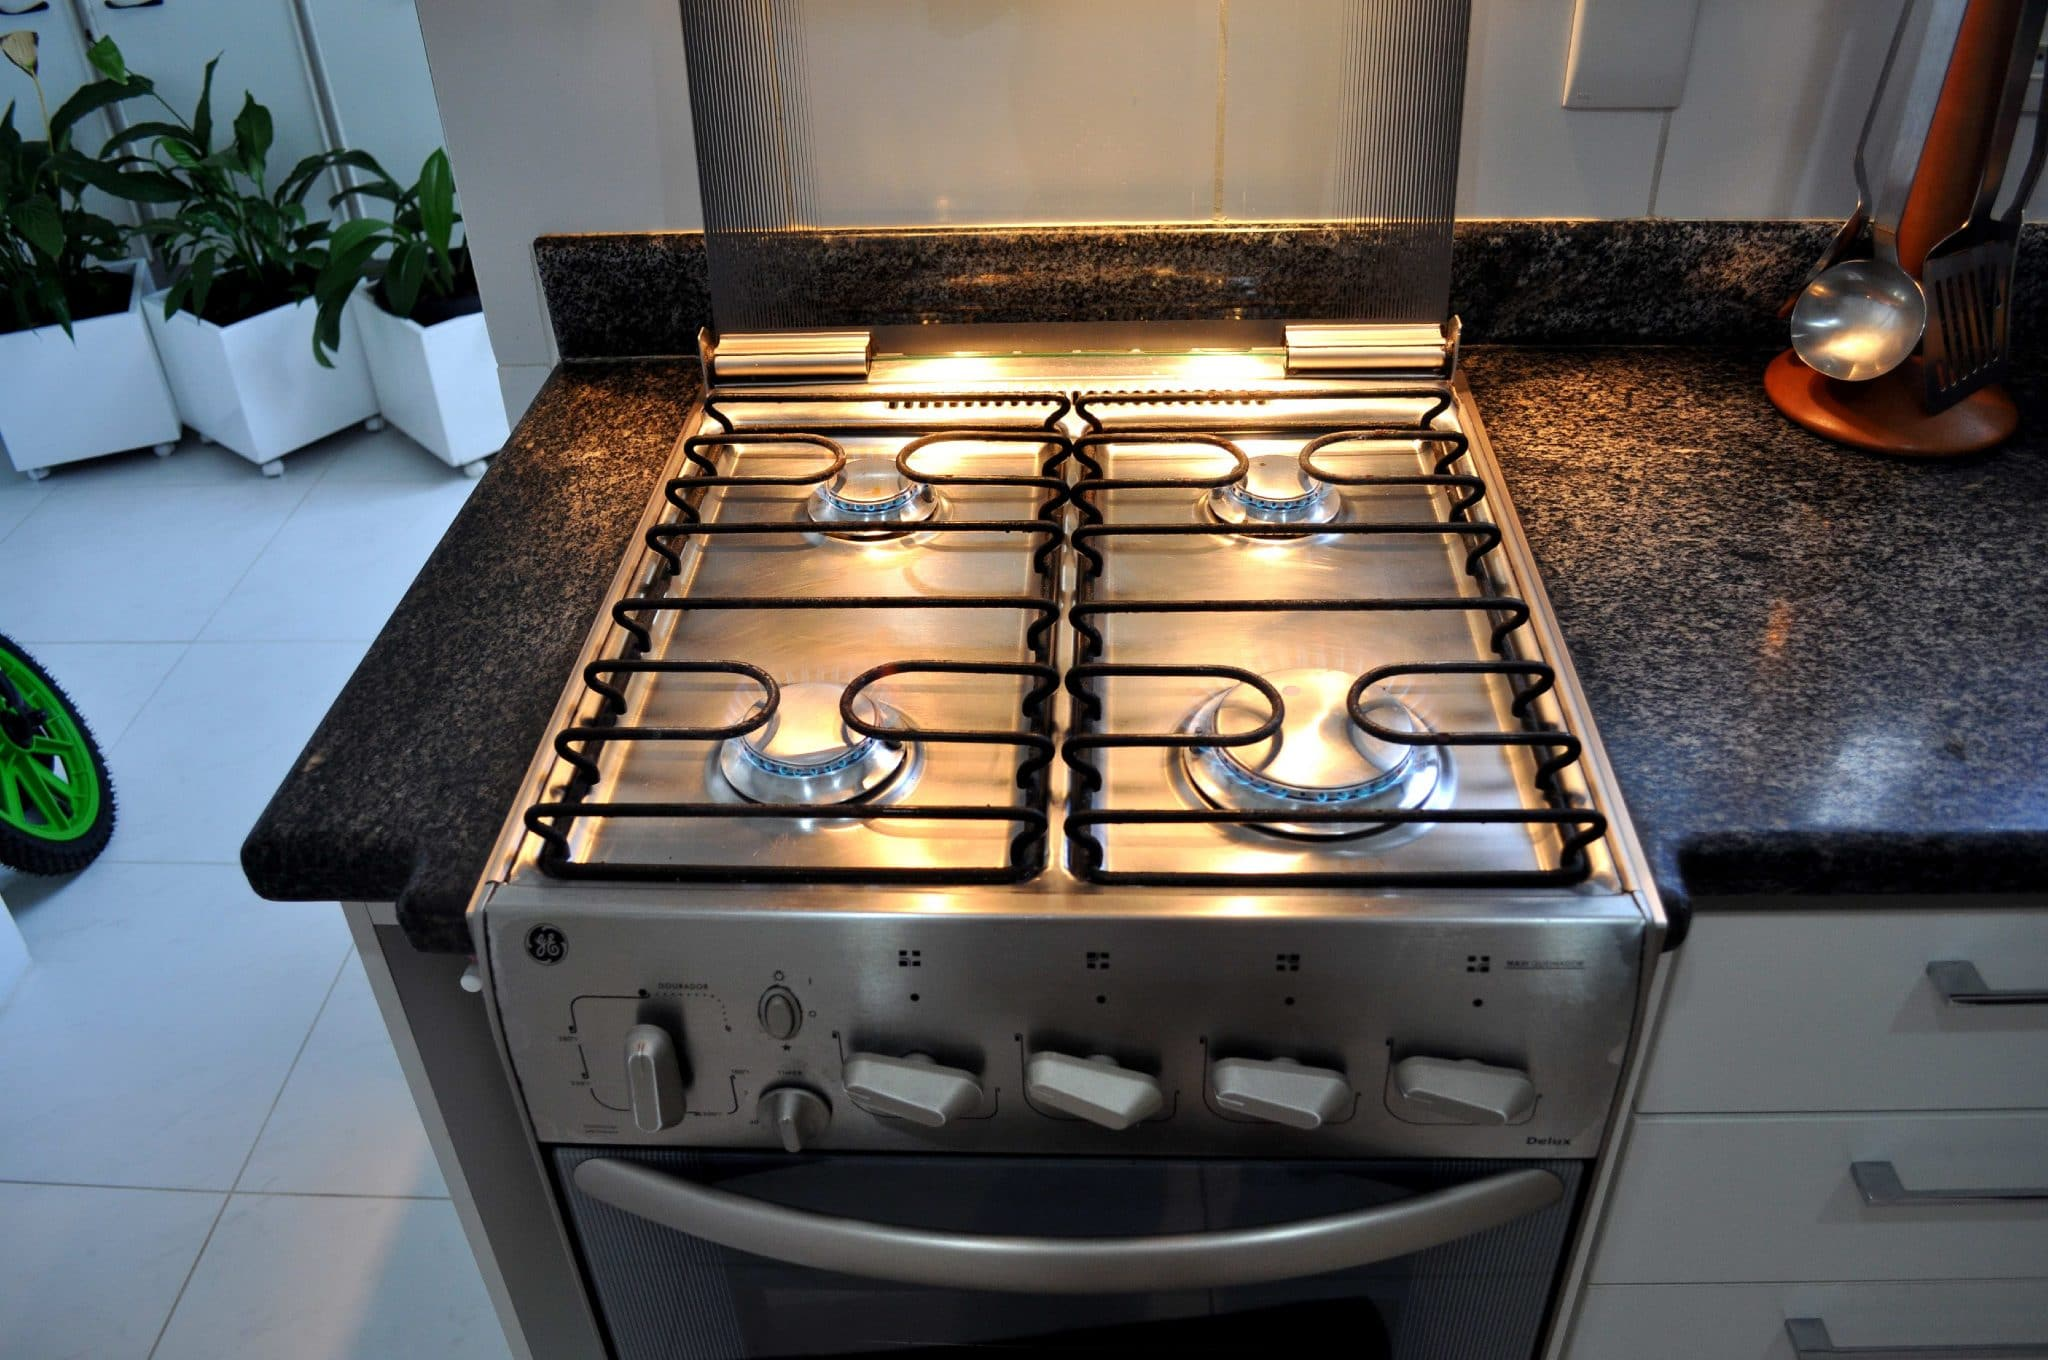 four burner range, four burner stove